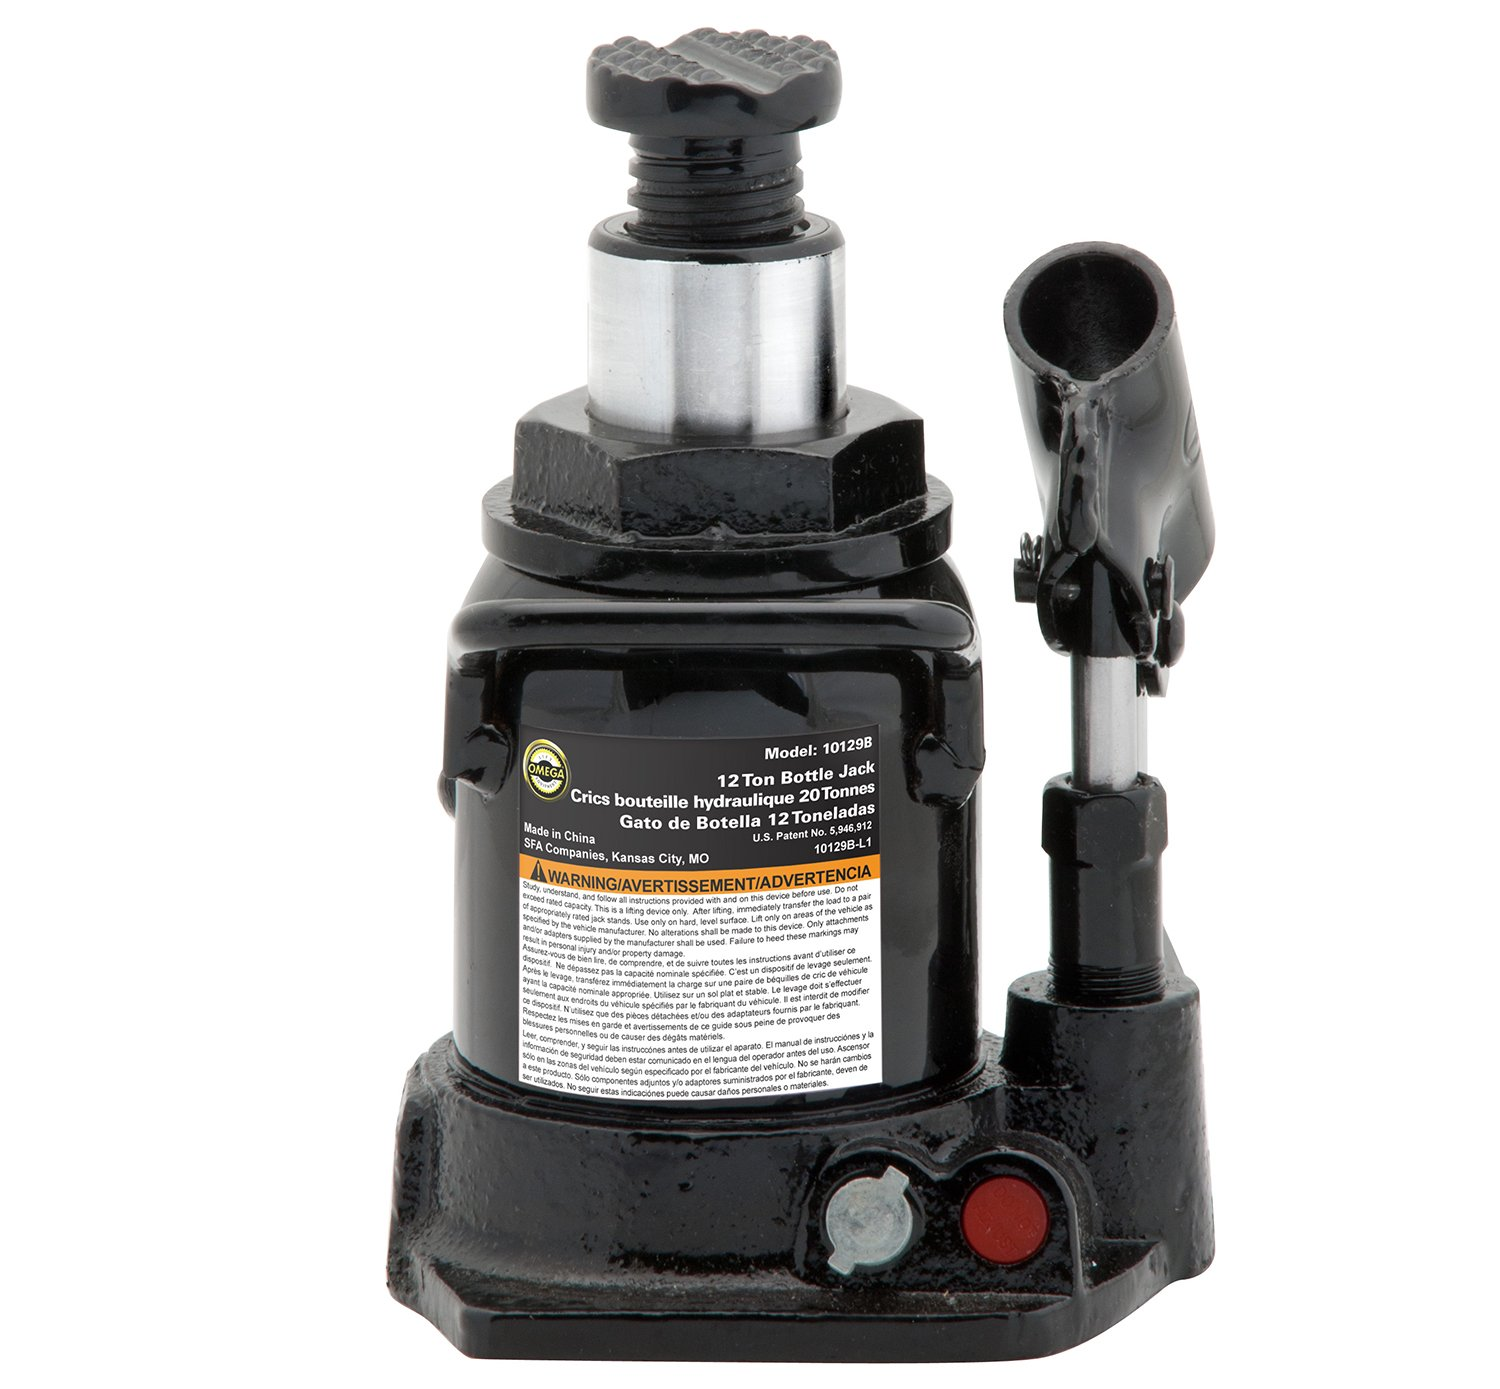 Amazon.com: Omega 10129B Black Shorty Hydraulic Bottle Jack - 12 Ton Capacity: Automotive